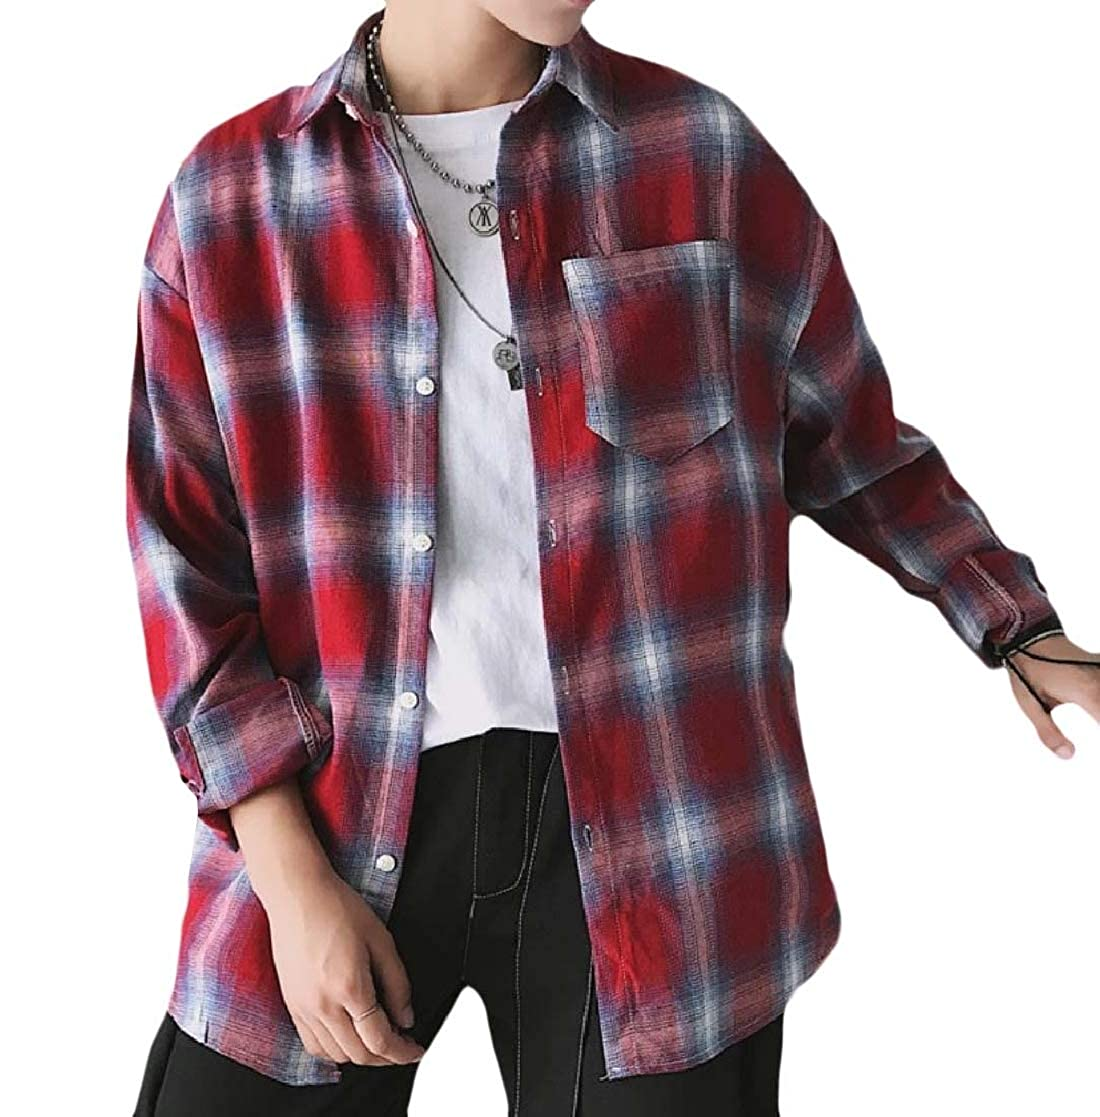 YUNY Mens Long Sleeve Button Regular Fit Oversized Plaid Western Shirt 12 S